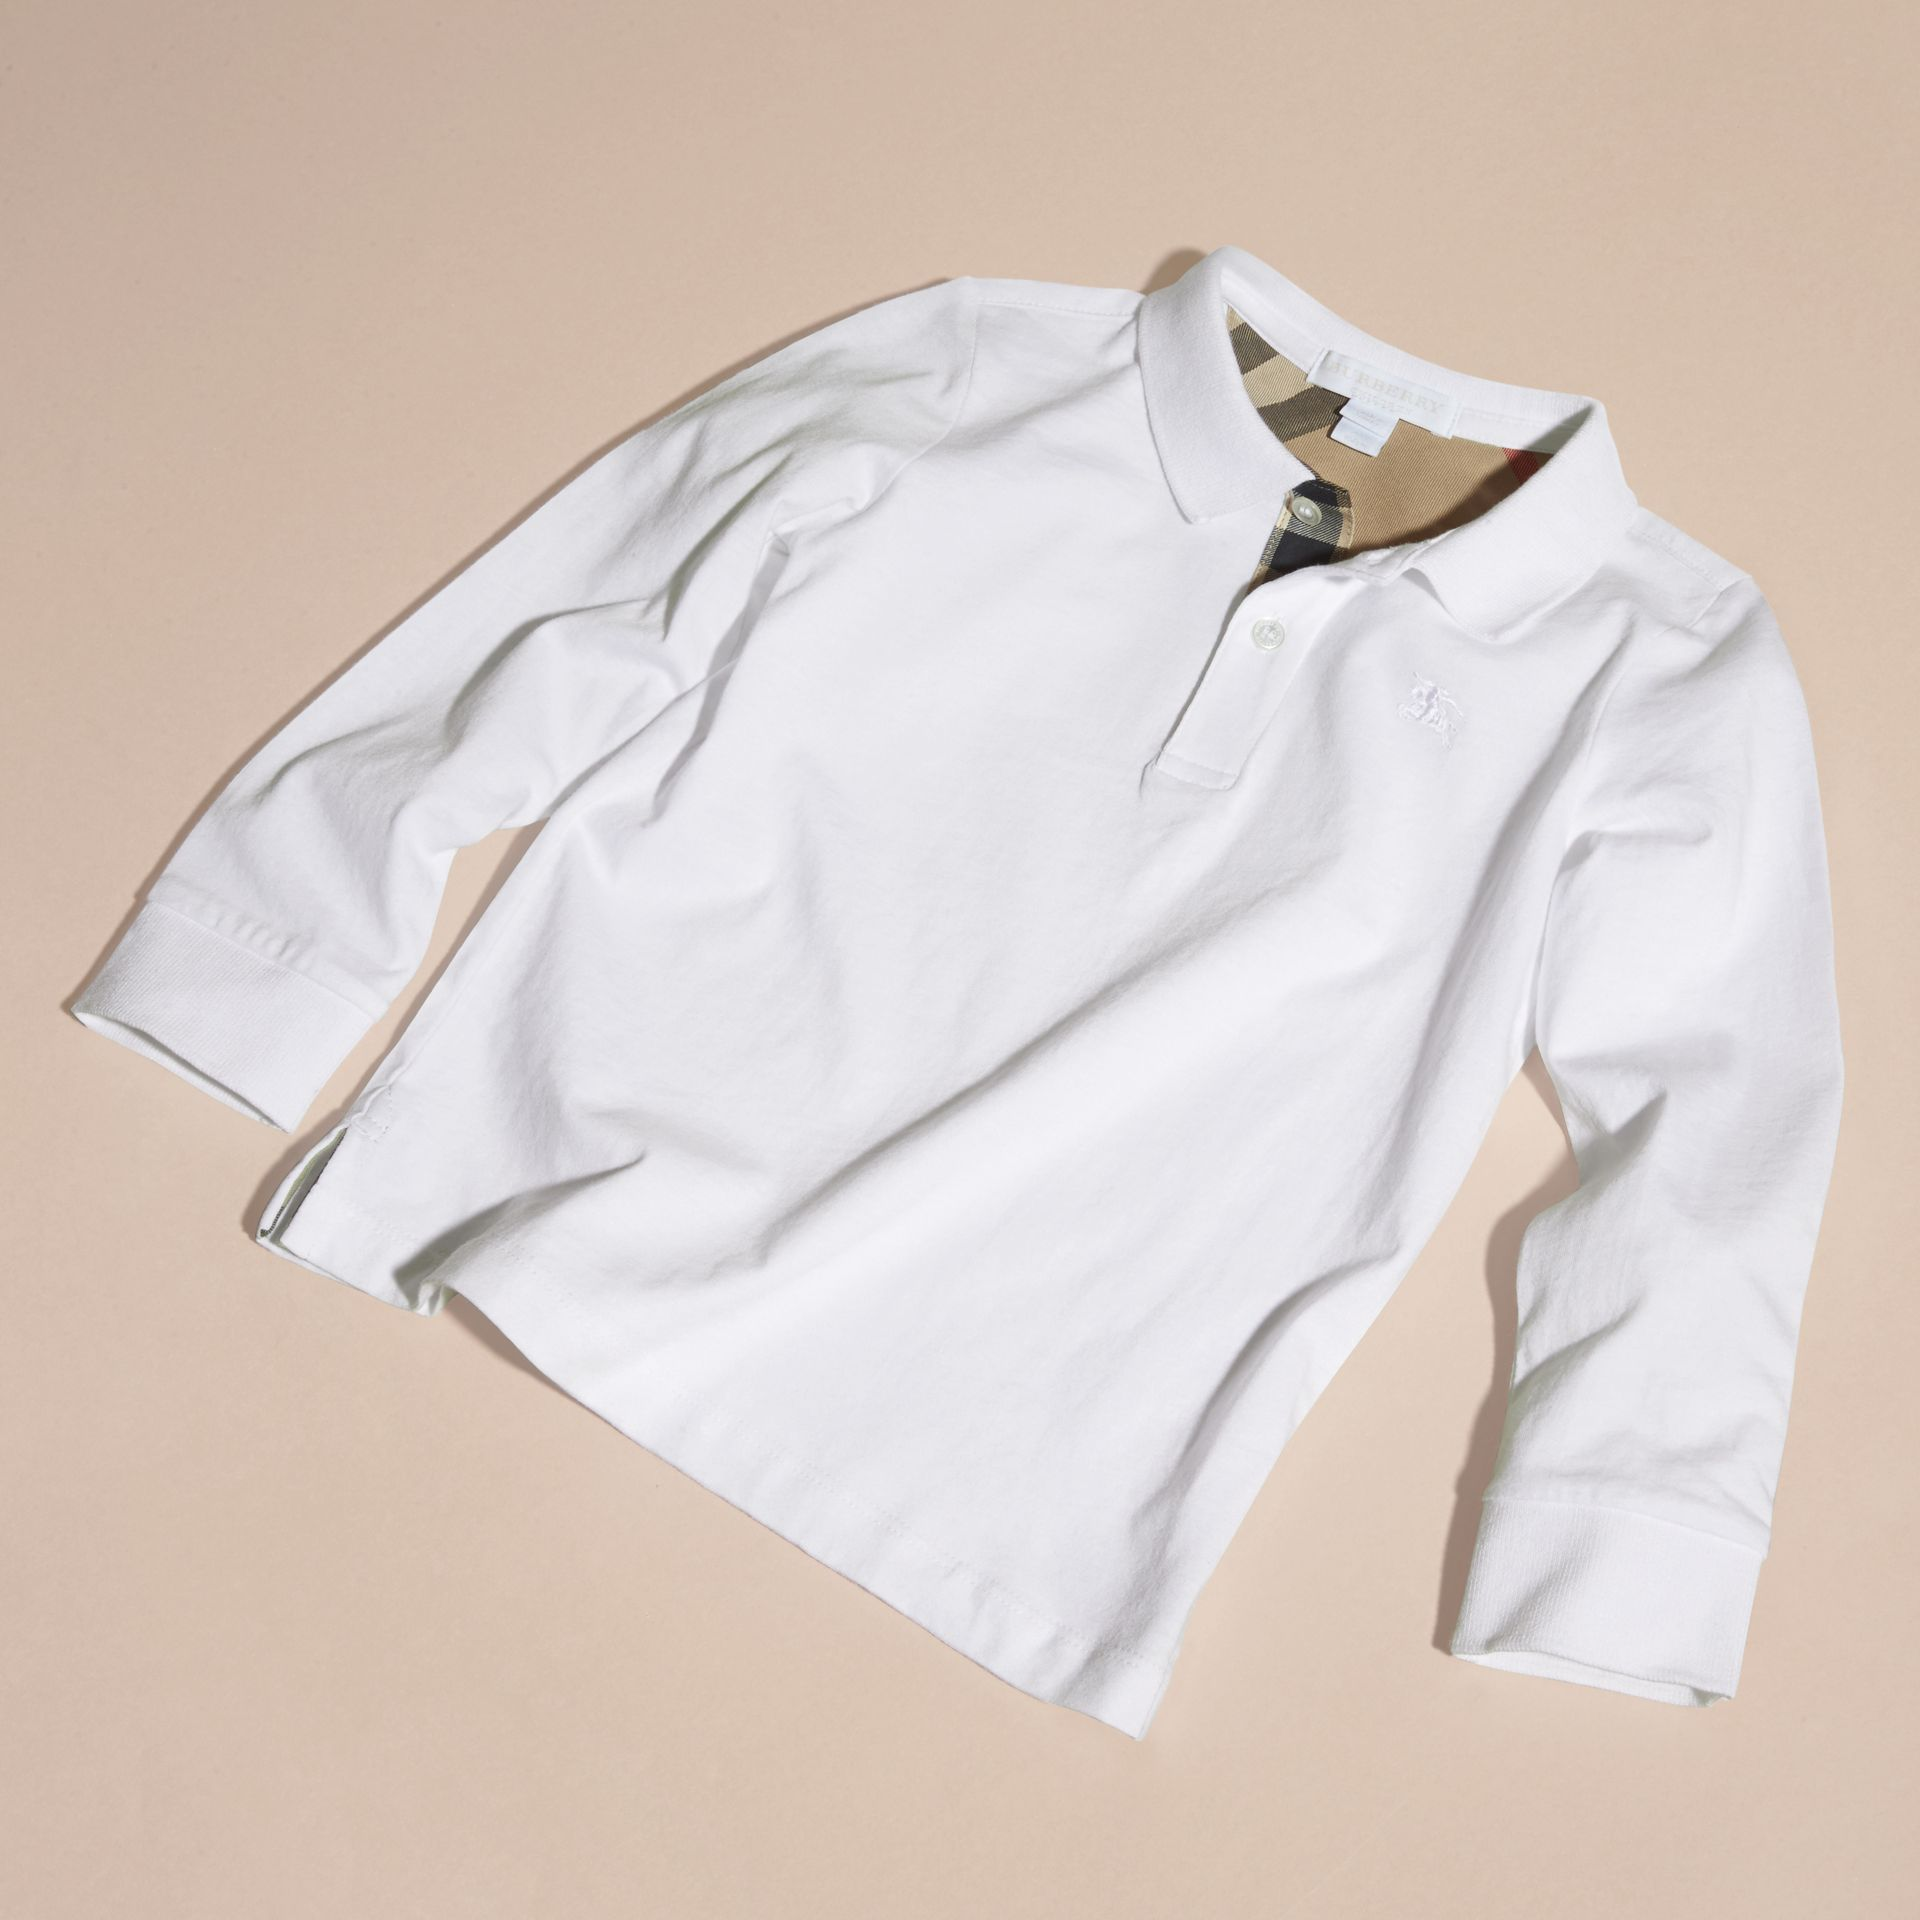 White Long-sleeved Cotton Polo Shirt White - gallery image 3